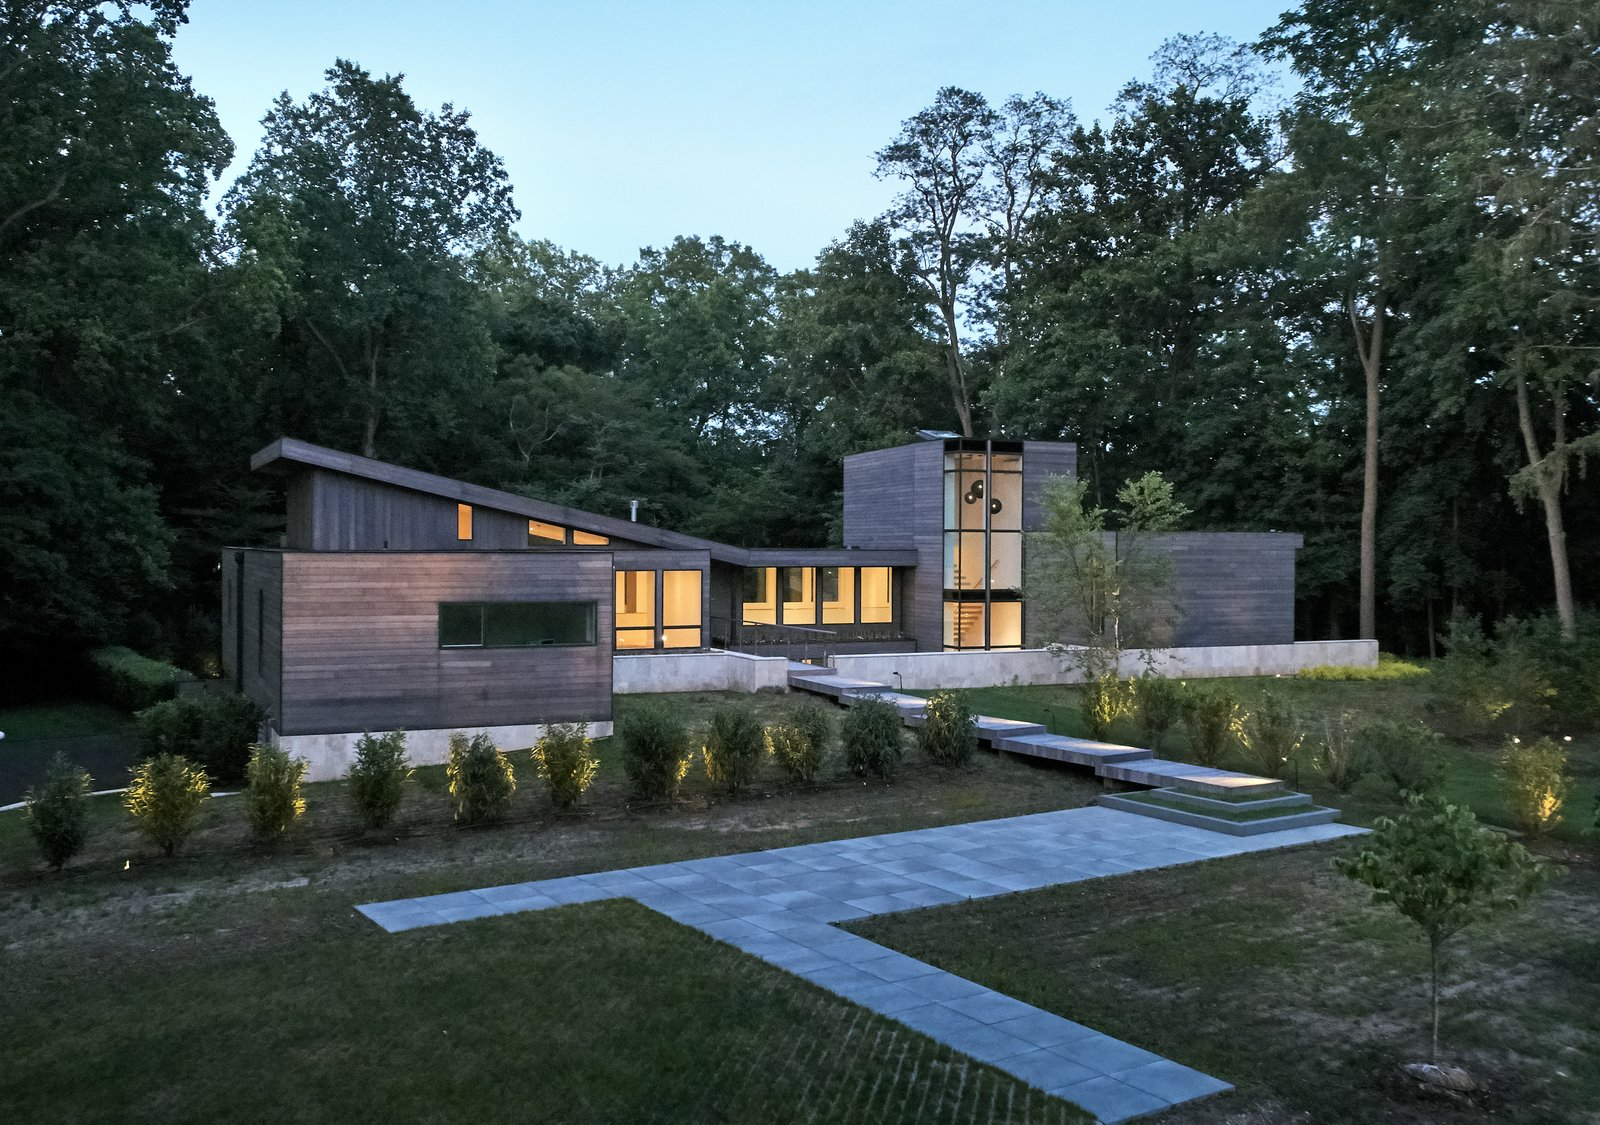 Exterior, Butterfly, Shingles, Wood, Hipped, Metal, Glass, House, and Flat At first glance, the structure appears to be a single-story home. The surrounding trees create additional privacy as the yard begins to slope toward the rear.  Exterior Glass Butterfly Metal House Photos from Walls of Windows Connect a Home With Earth and Sky